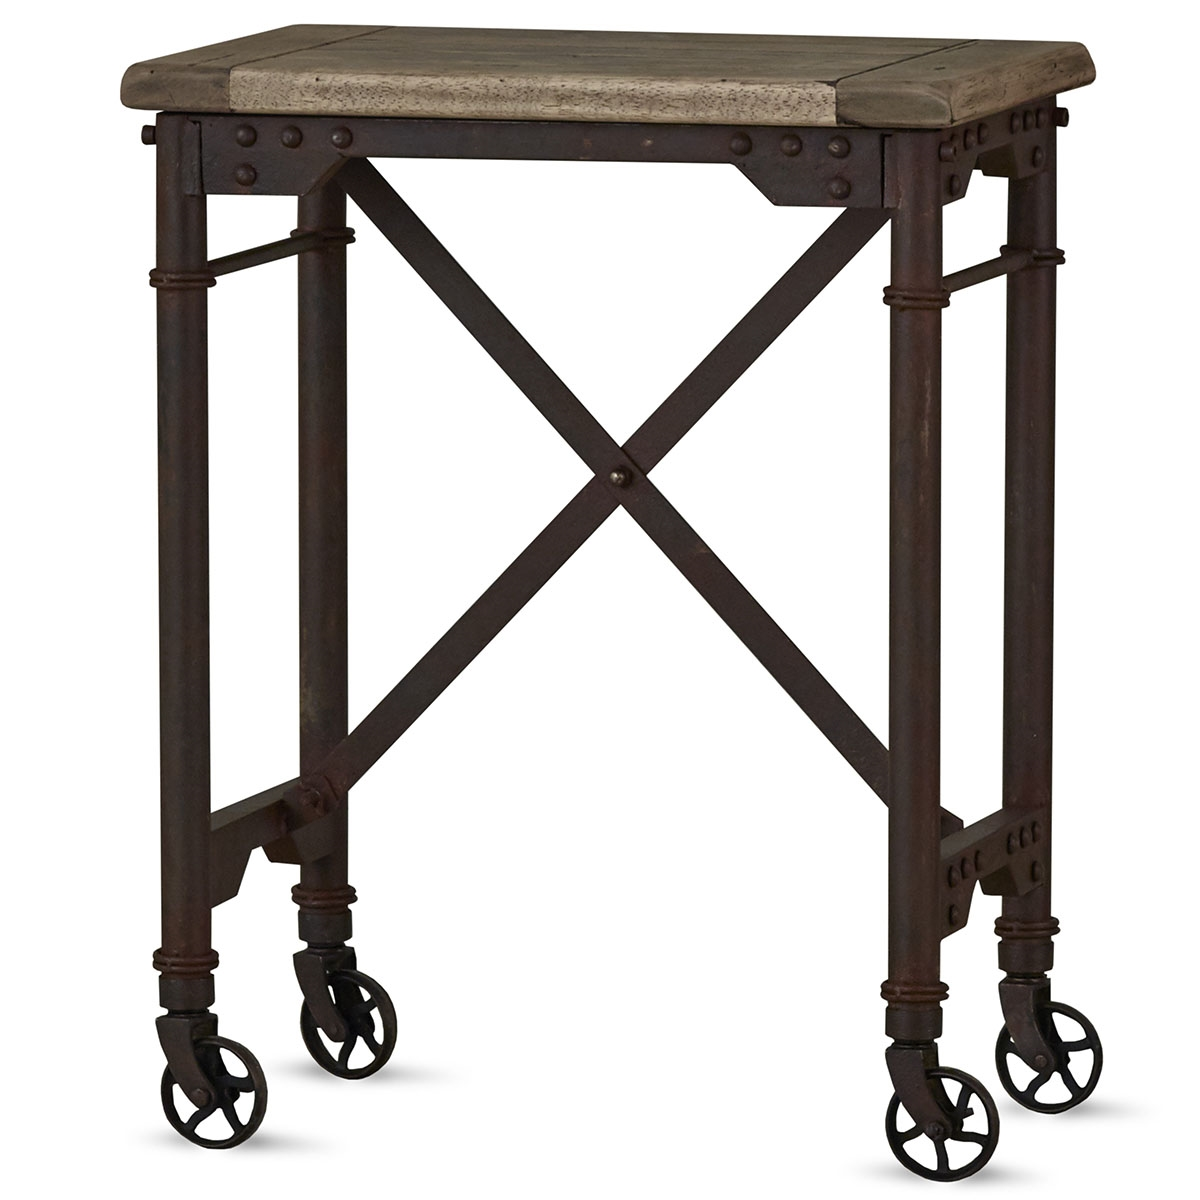 mercantile side table iron wood end industrial accent larger email friend jcpenney bar stools white cube coffee black college dorm ping inch bedside round nesting tables lamp with